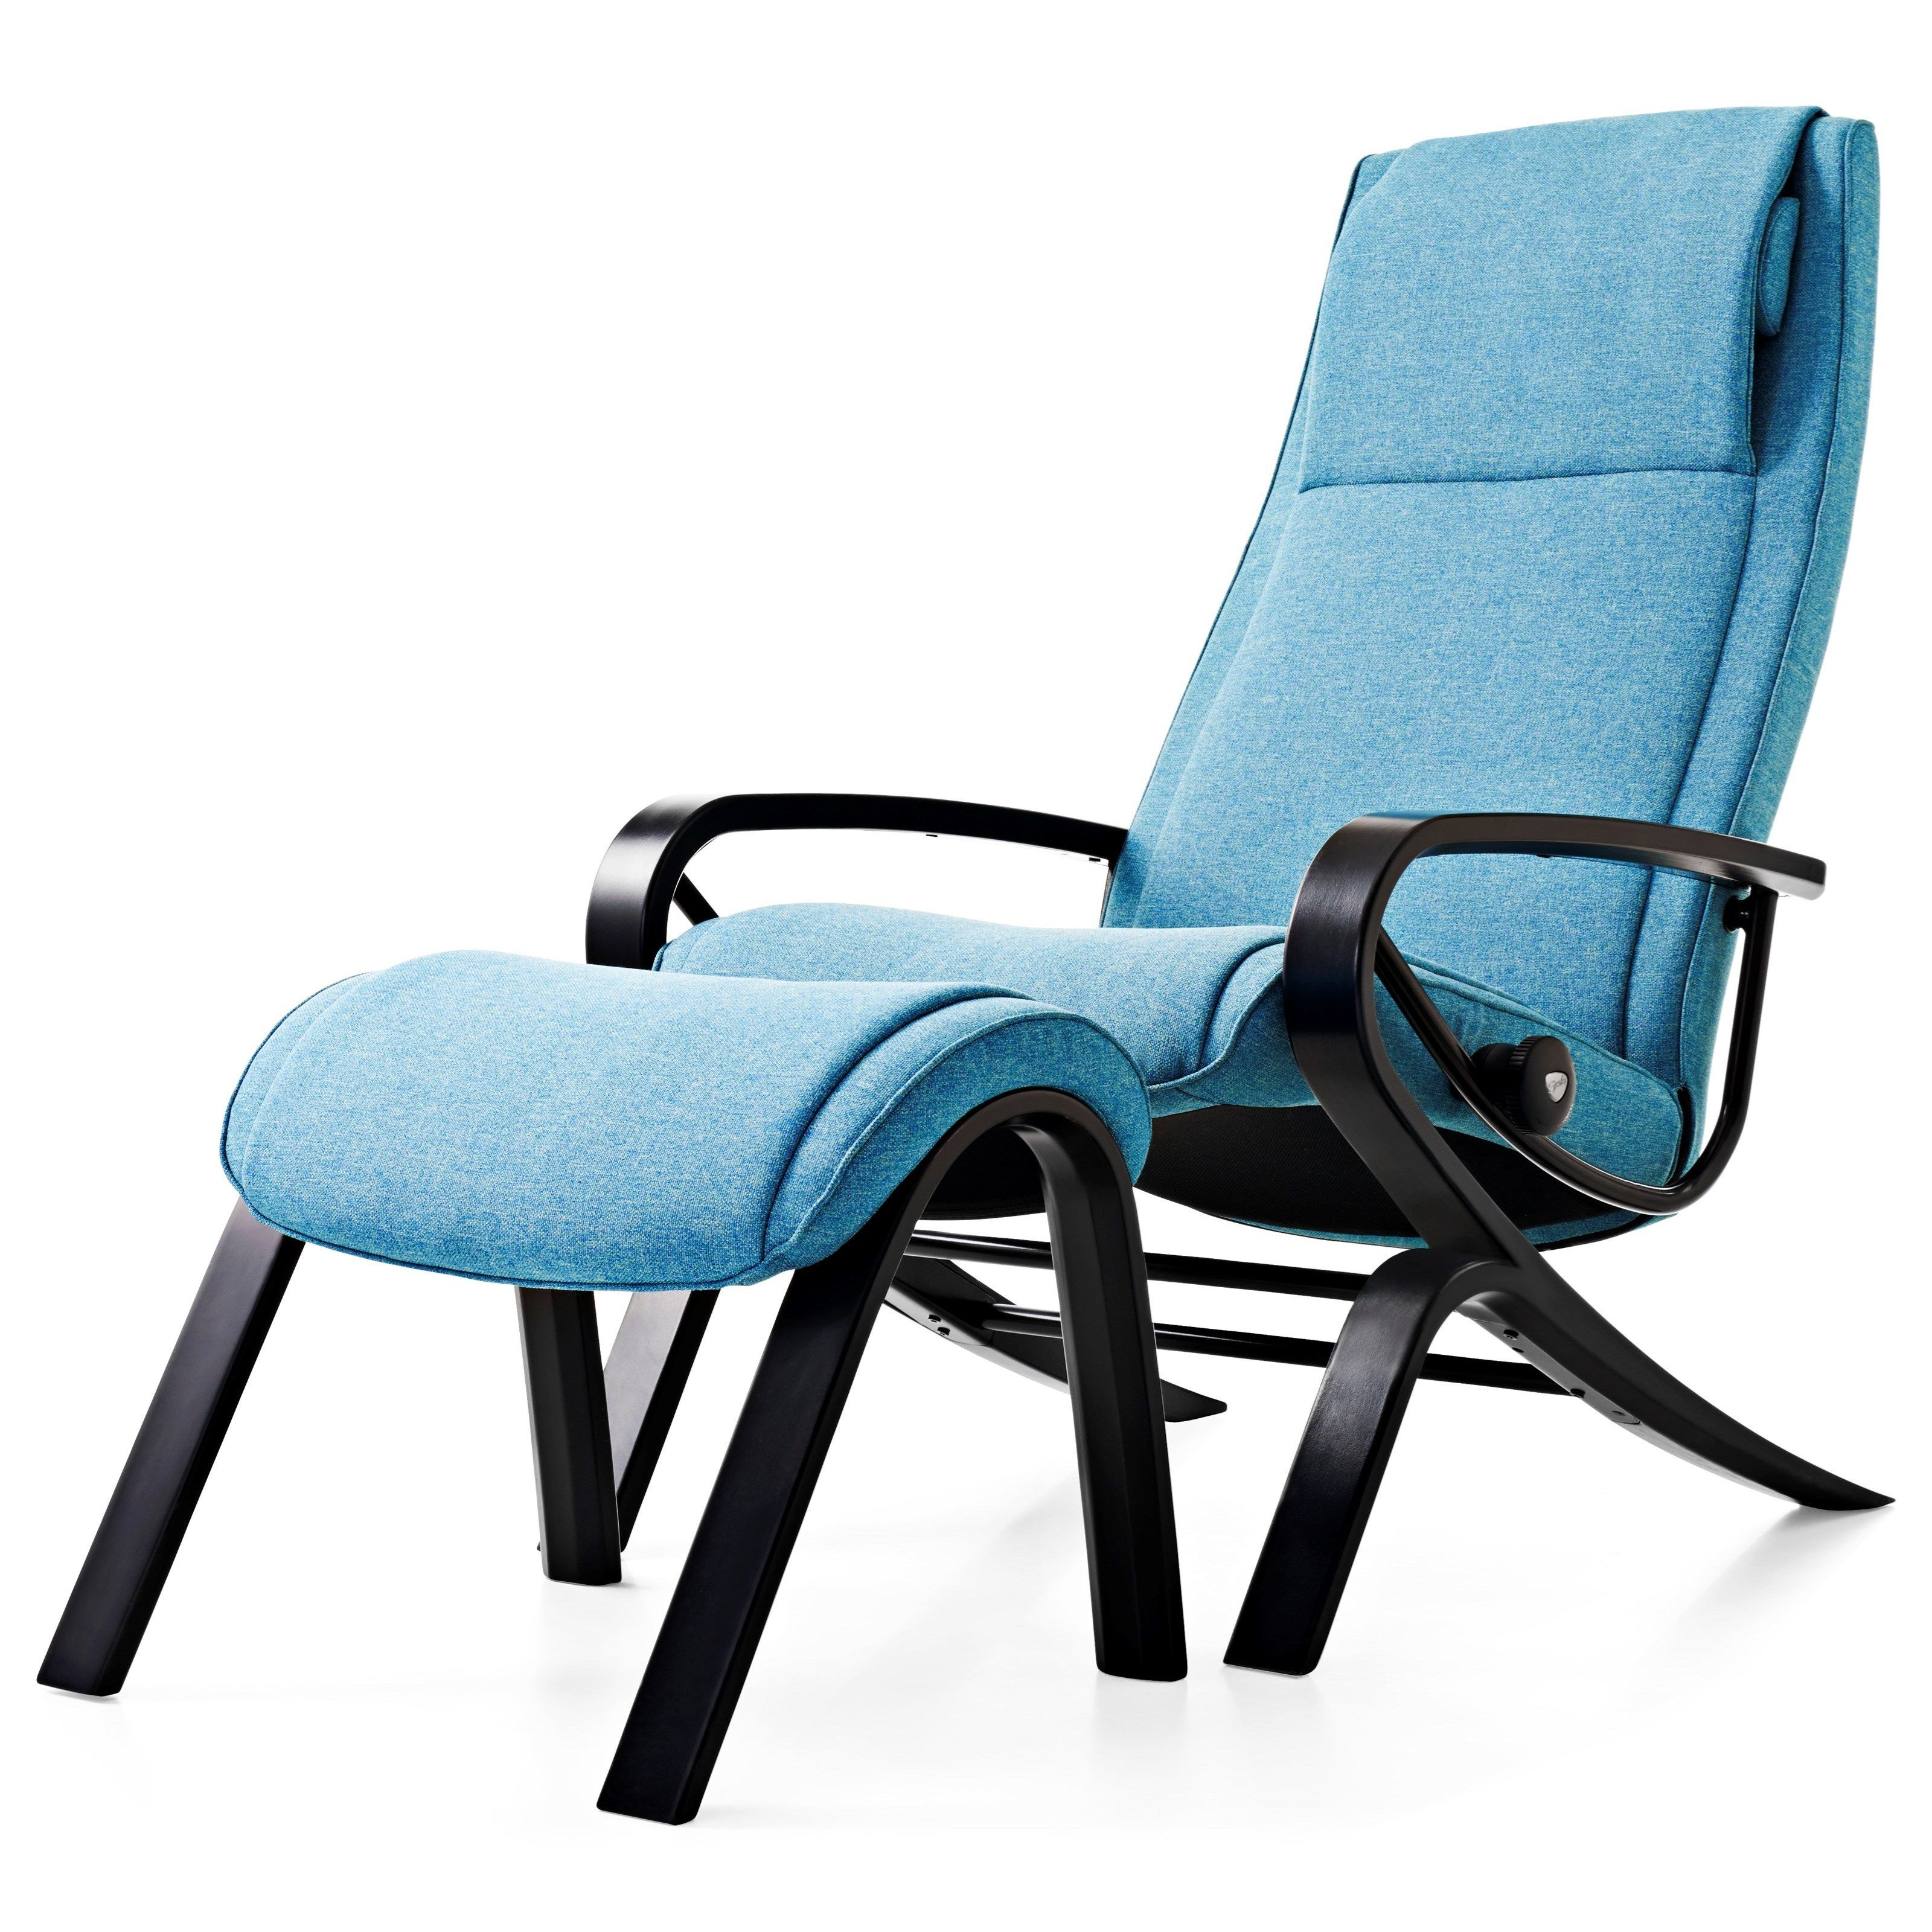 stressless you james reclining chair and ottoman karma aqua w wood base by stressless by. Black Bedroom Furniture Sets. Home Design Ideas